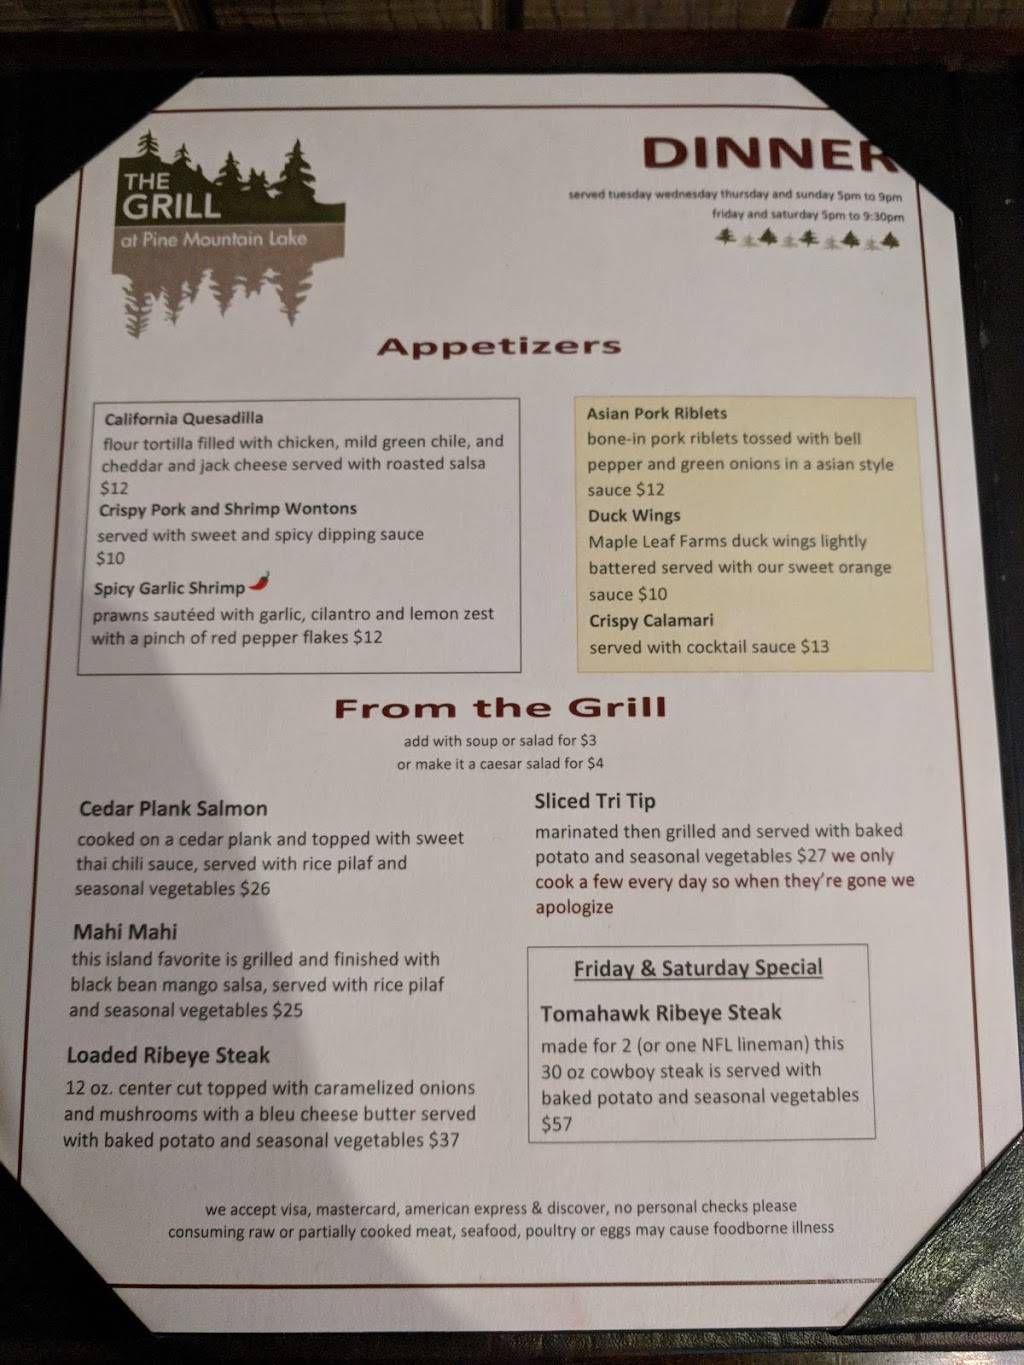 The Grill | restaurant | 12765 Mueller Dr, Groveland, CA 95321, USA